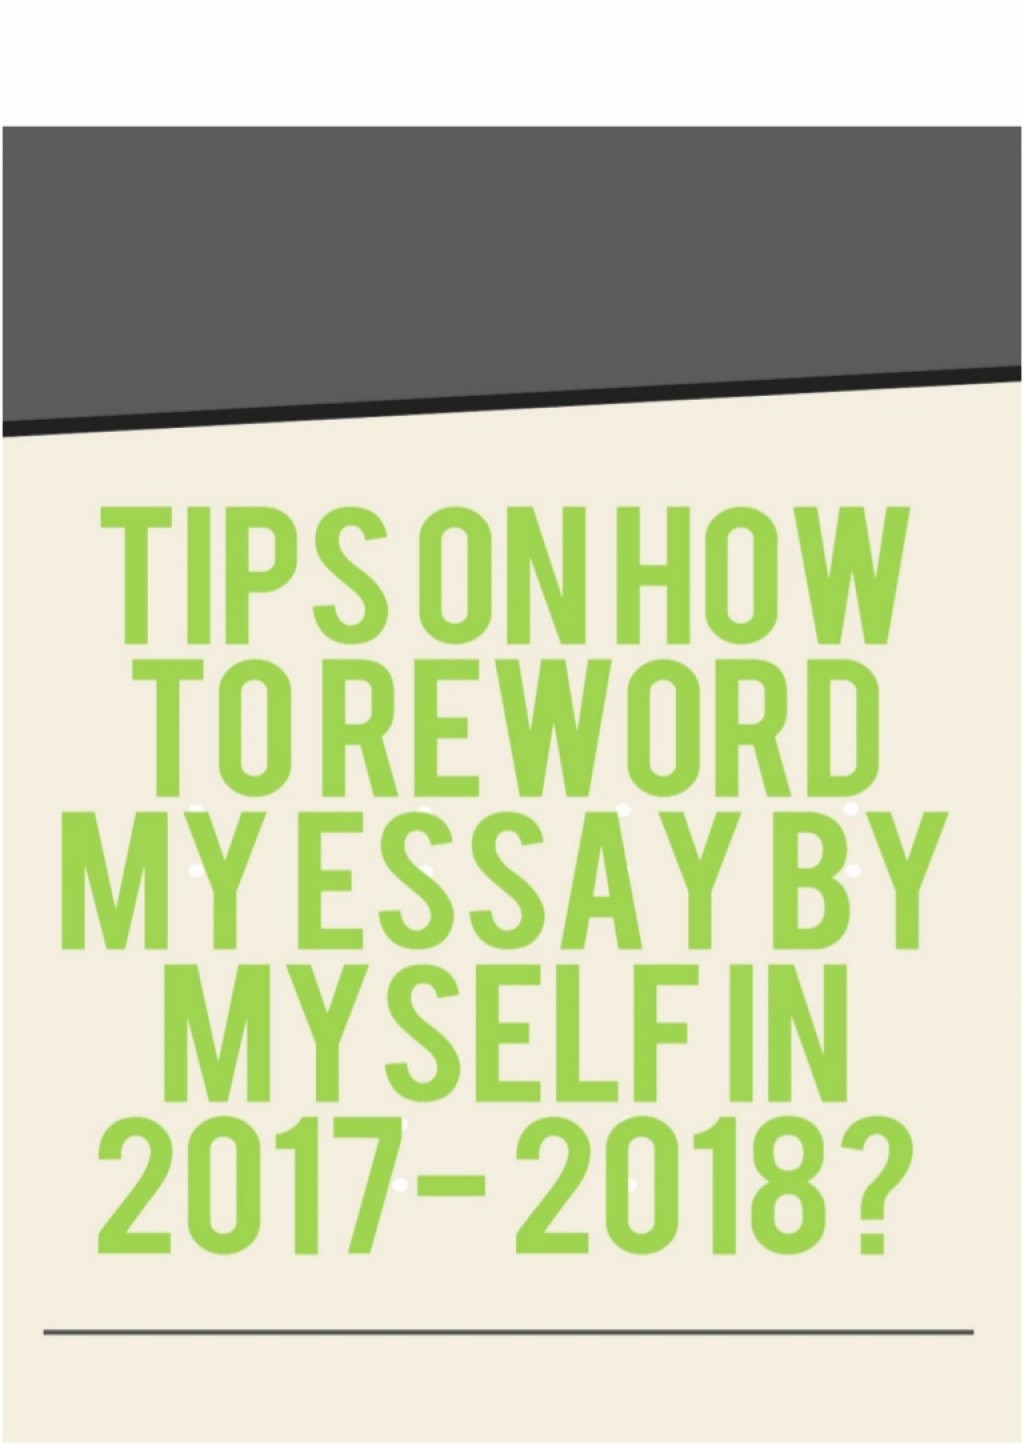 005 Reword My Essay Example Tipsonhowtorewordmyessaybymyselfin2017 Thumbnail Unique Free Large